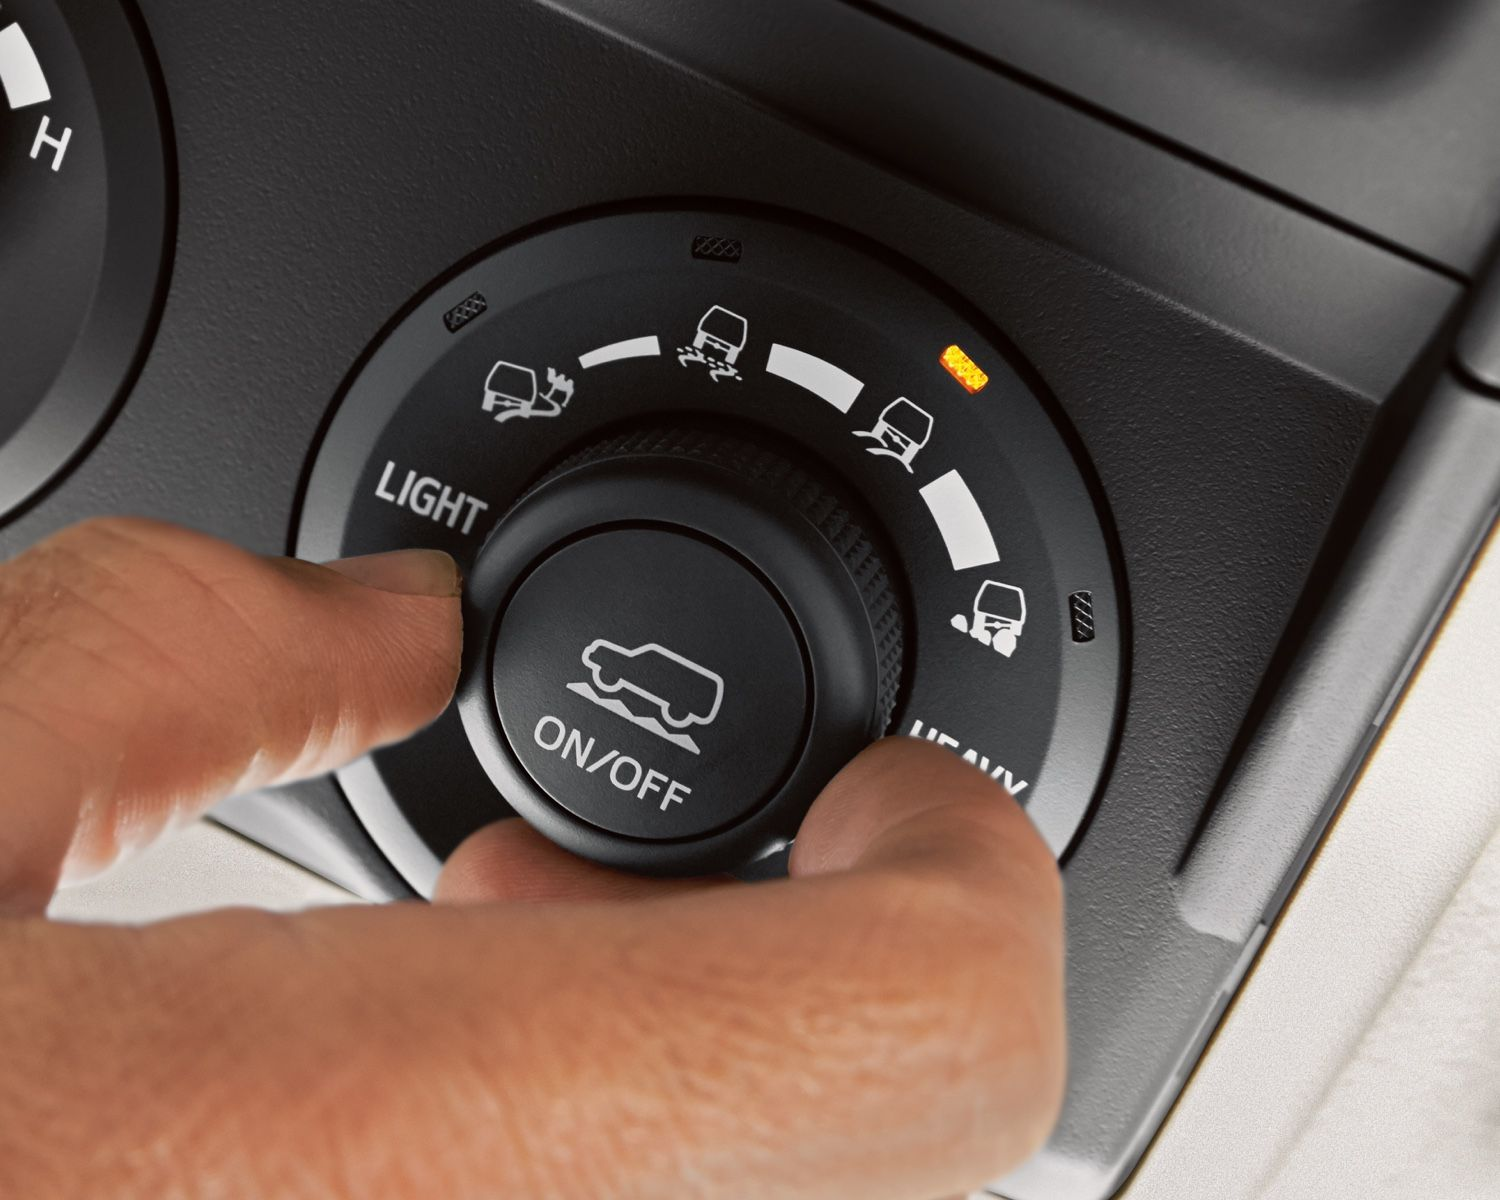 Available 4-Wheel Crawl Control